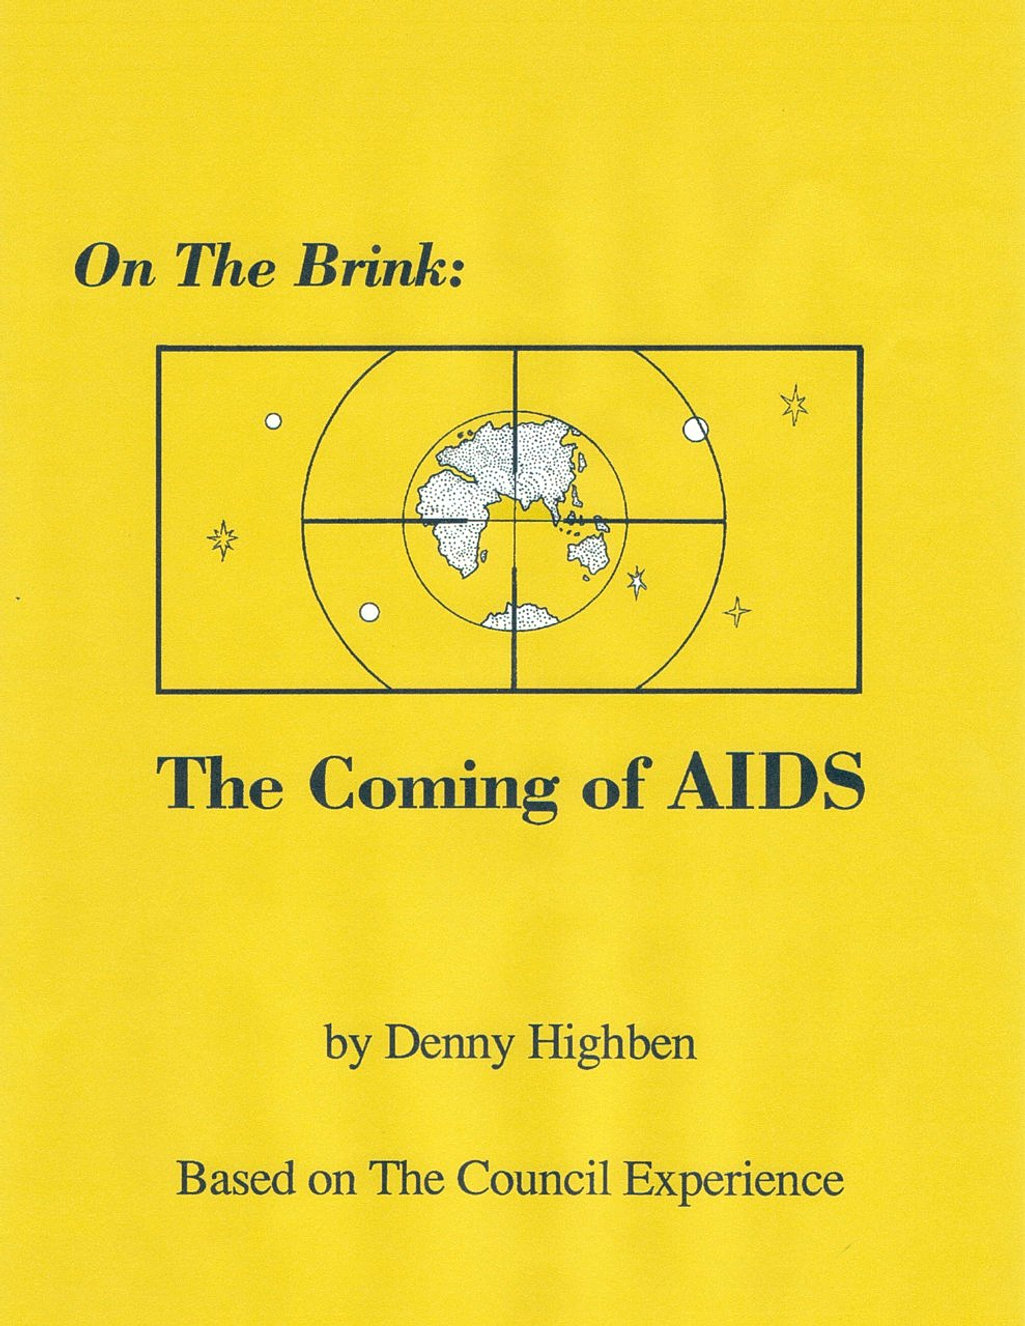 On The Brink-The Coming of AIDS